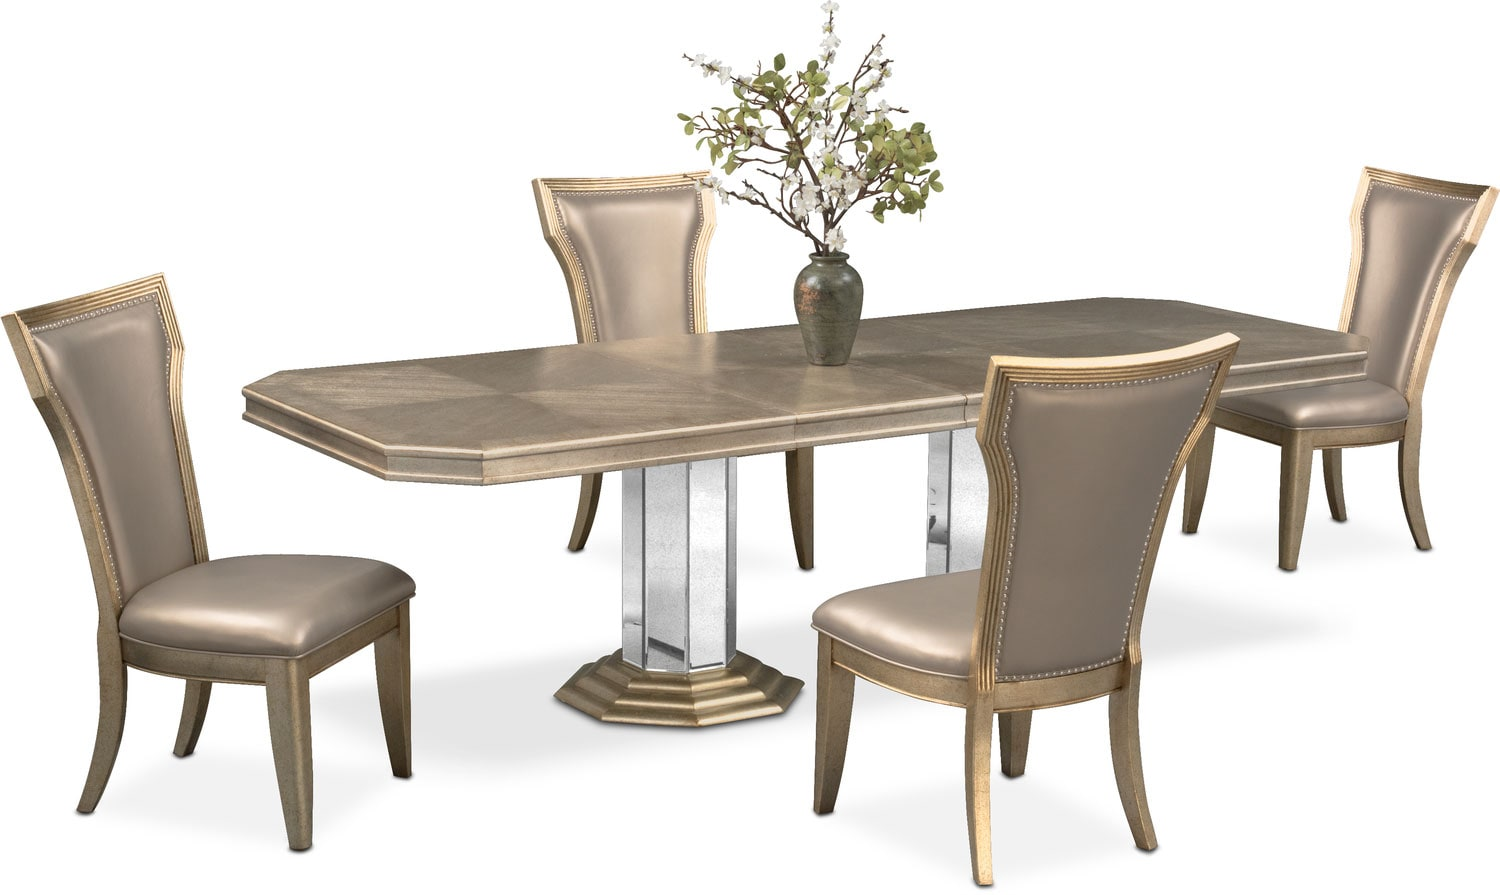 Dining Room Furniture - Angelina Double-Pedestal Table and 4 Side Chairs - Metallic